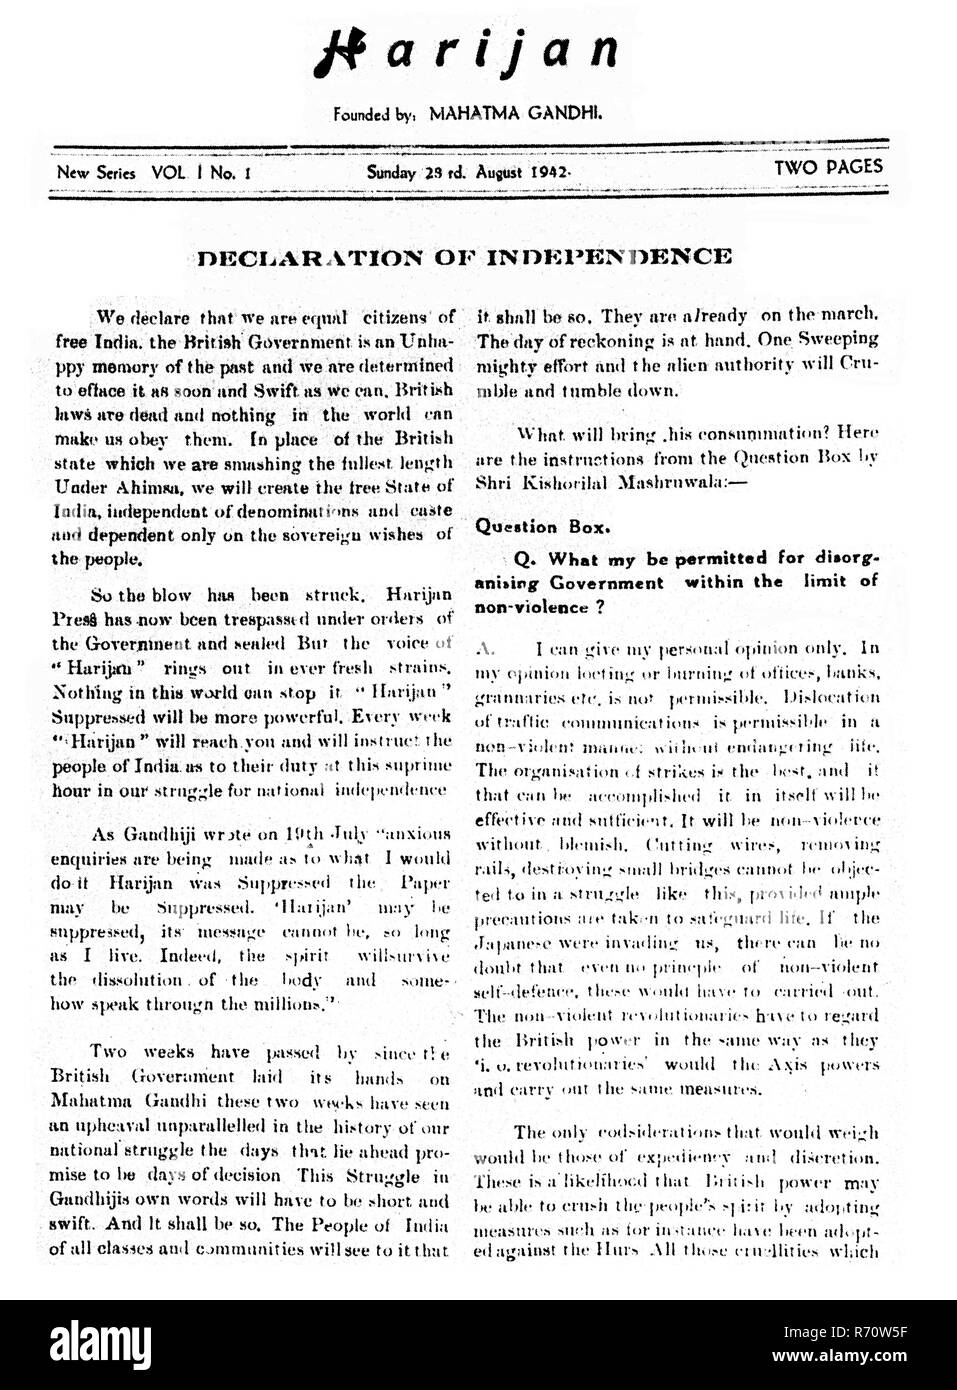 Front page of Harijan (Declaration of Independence), August 23, 1942 - Stock Image